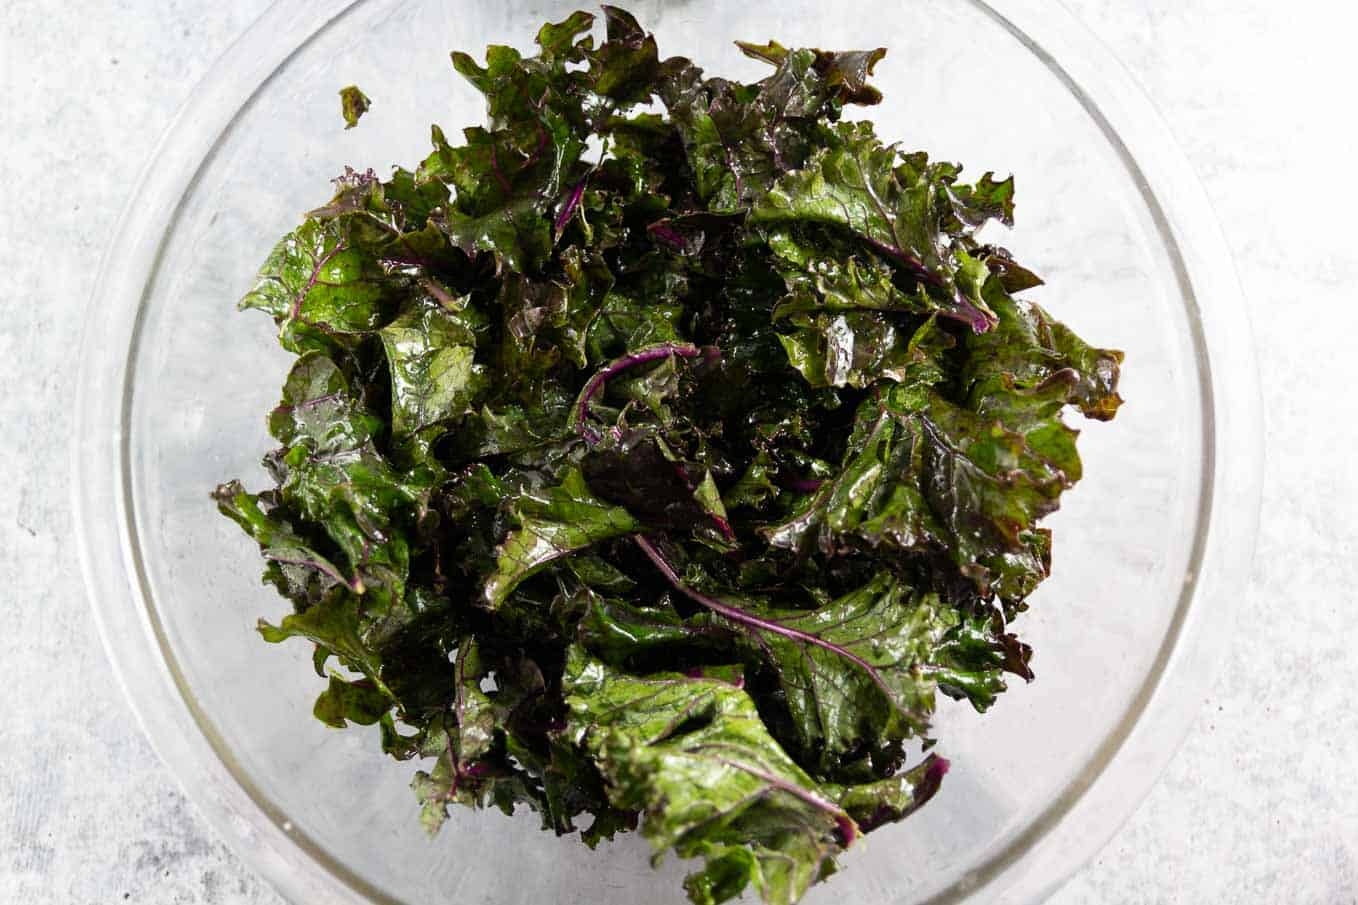 Kale massaged with a tablespoon of olive oil.